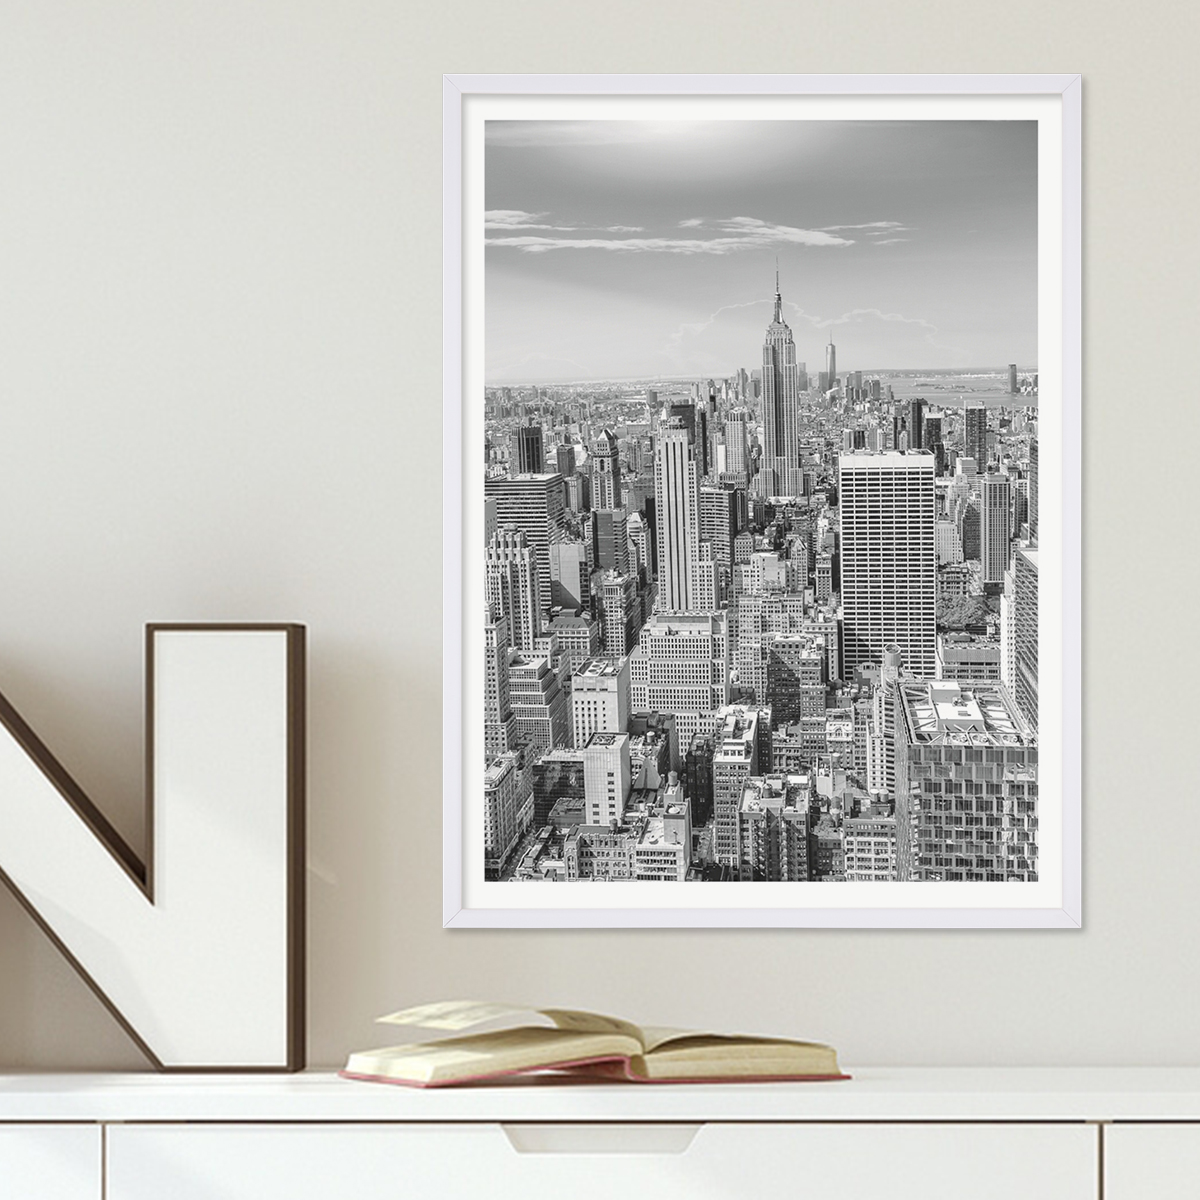 poster mit bilderrahmen weiss 39 new york city 39 30x40 cm schwarz weiss motiv landkarte skyline. Black Bedroom Furniture Sets. Home Design Ideas